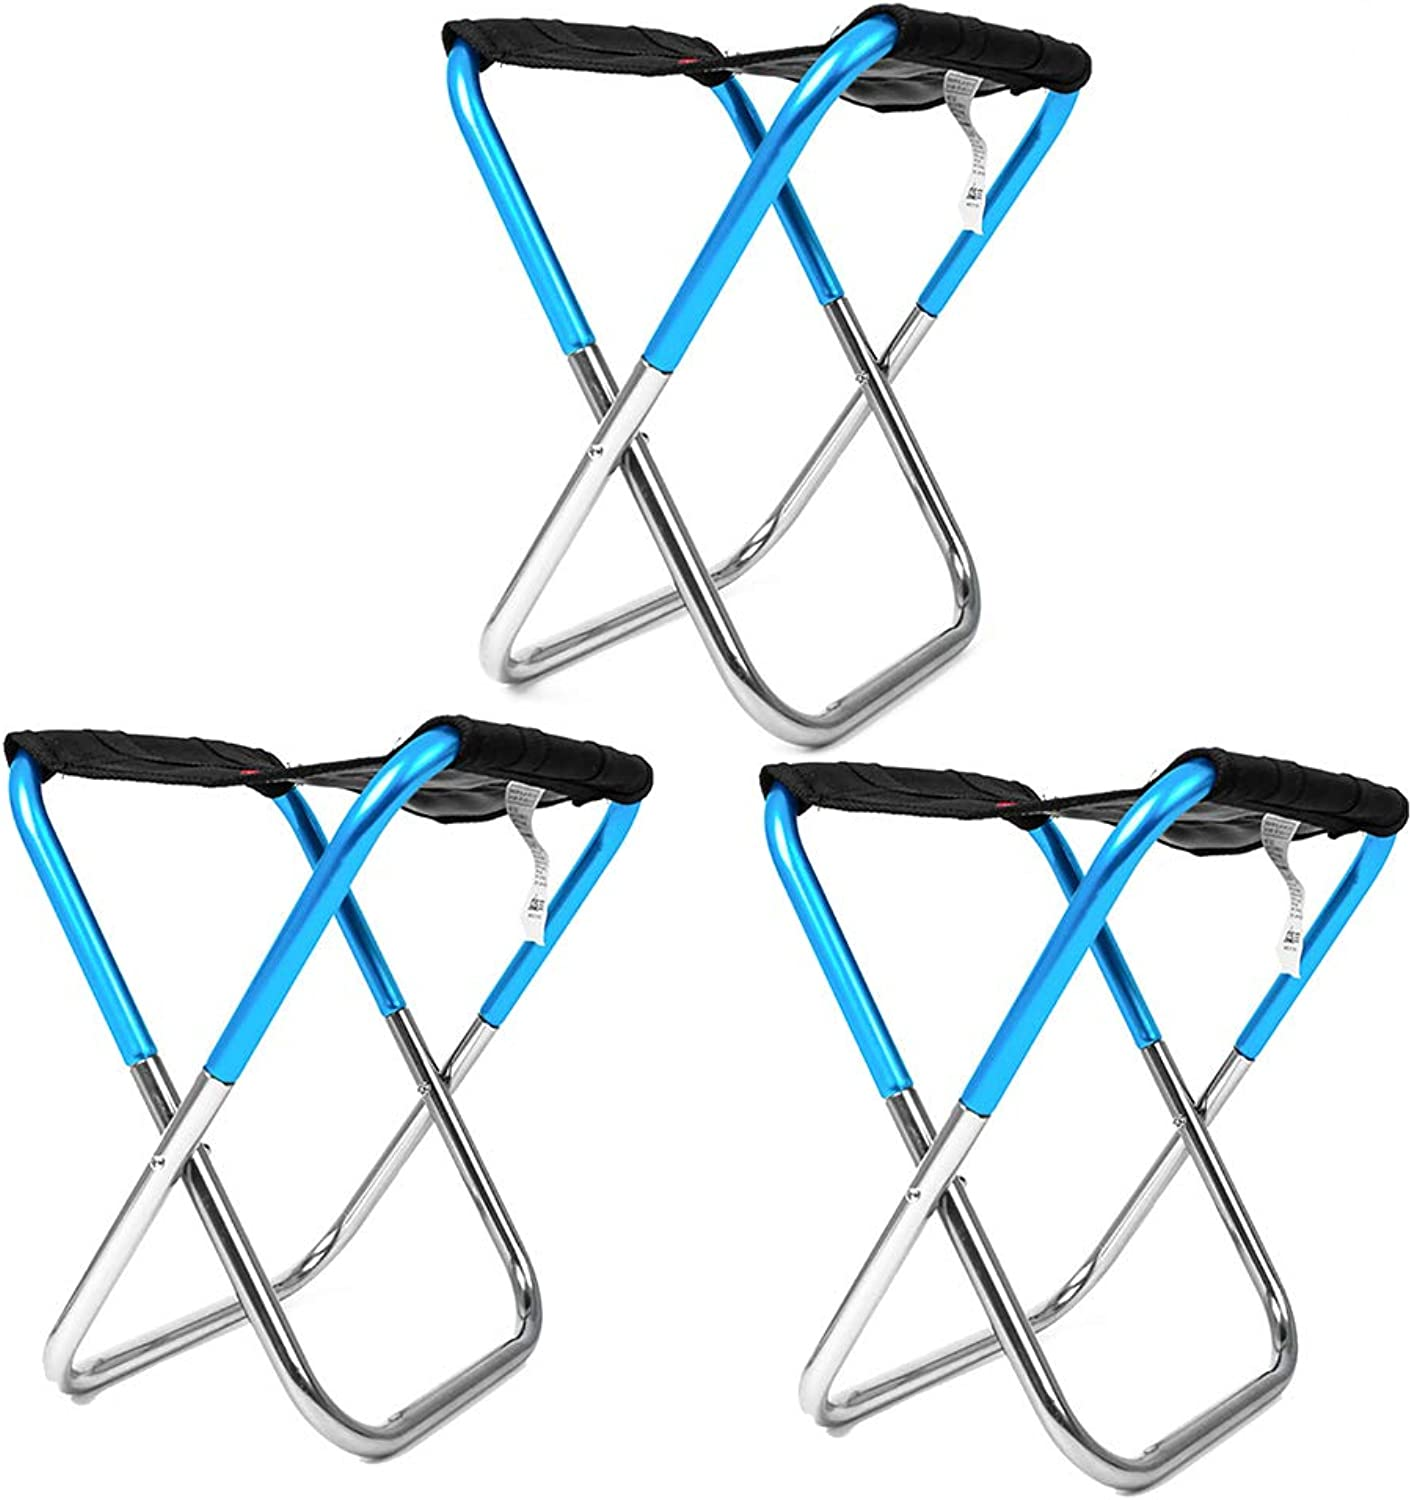 Compact Camping Folding Chair with Carry Bag,Supports 80kg,for Outdoor Camp, Travel, Picnic, Festival, Hiking,B,3pcs